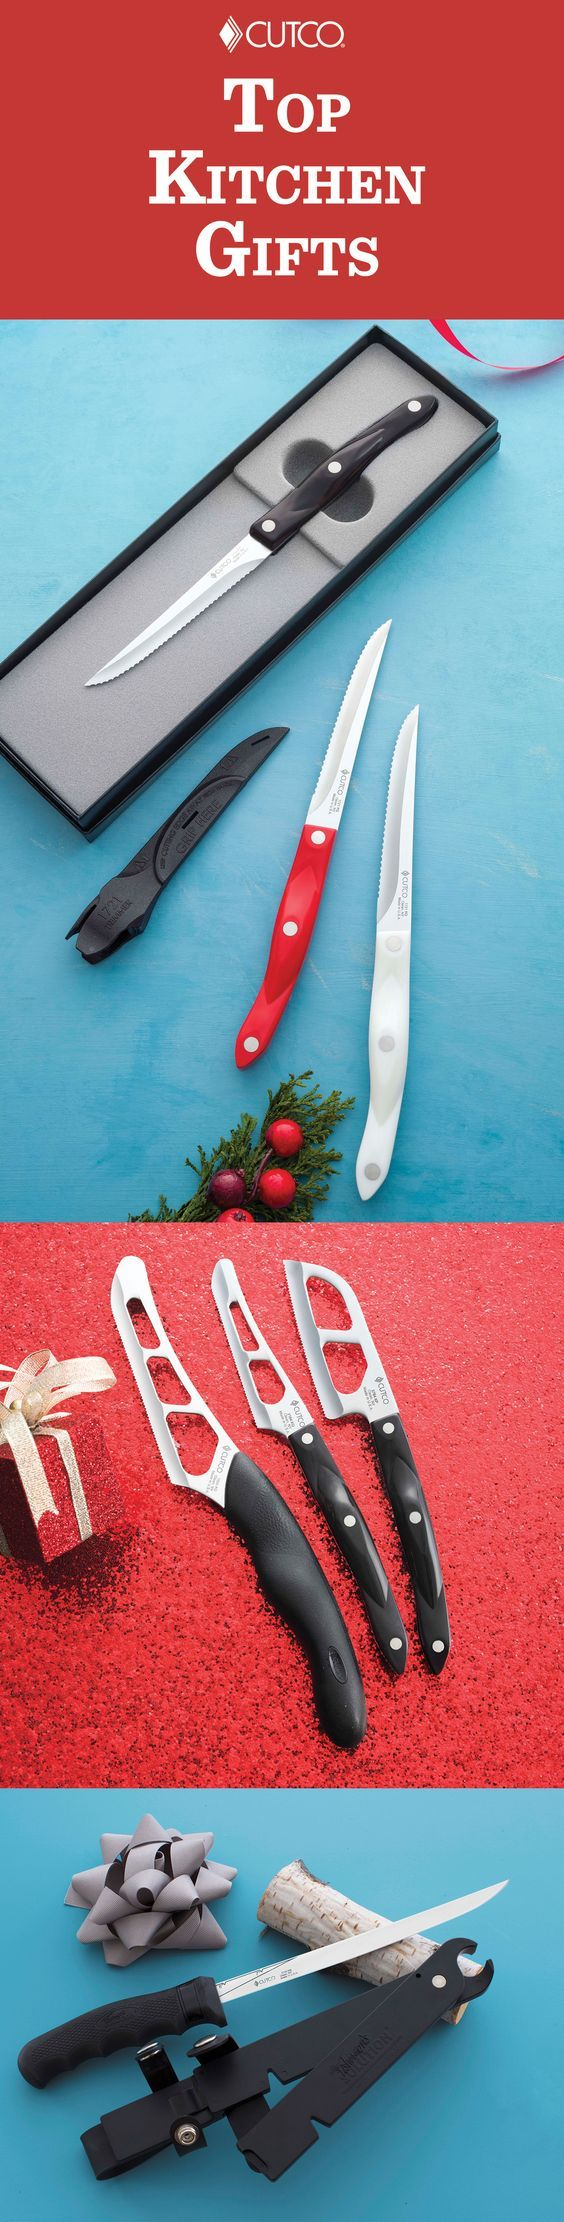 49 best Gifts for Her images on Pinterest | Kitchen gifts, Couples ...